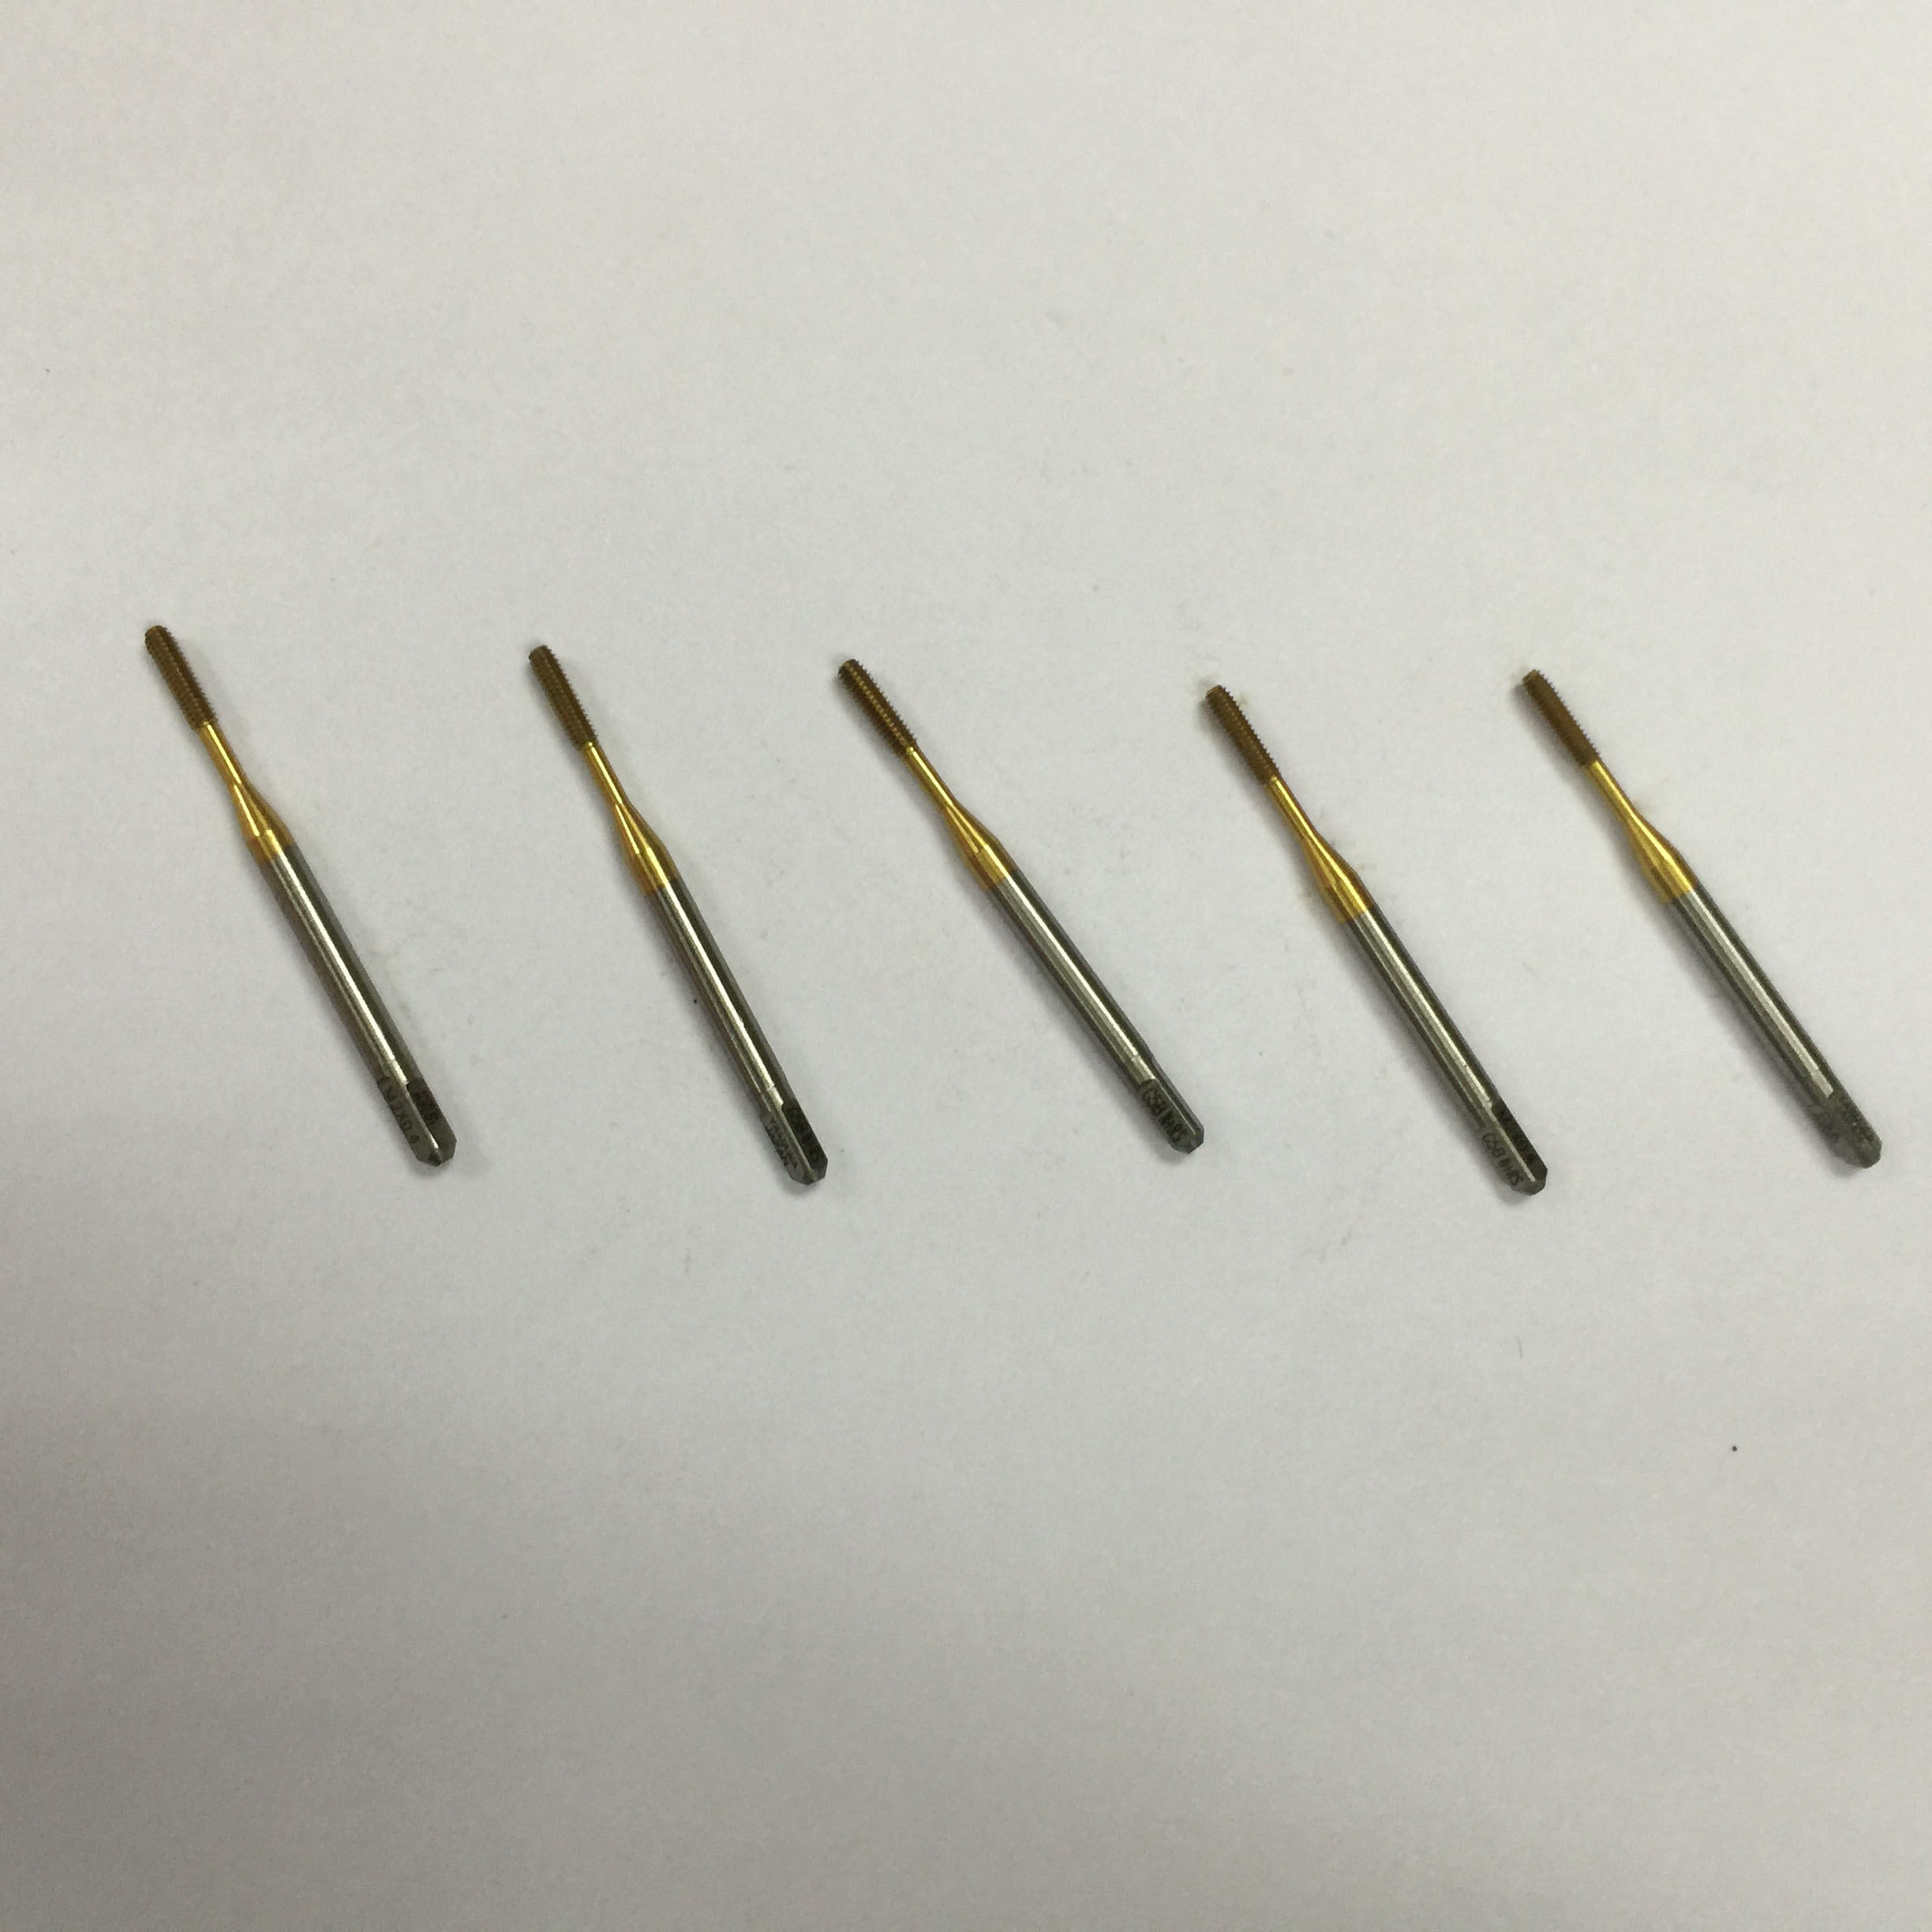 Japan Ti M34568N+RSRZG4G5G6 extrusion chipless extrusion screw tap tap